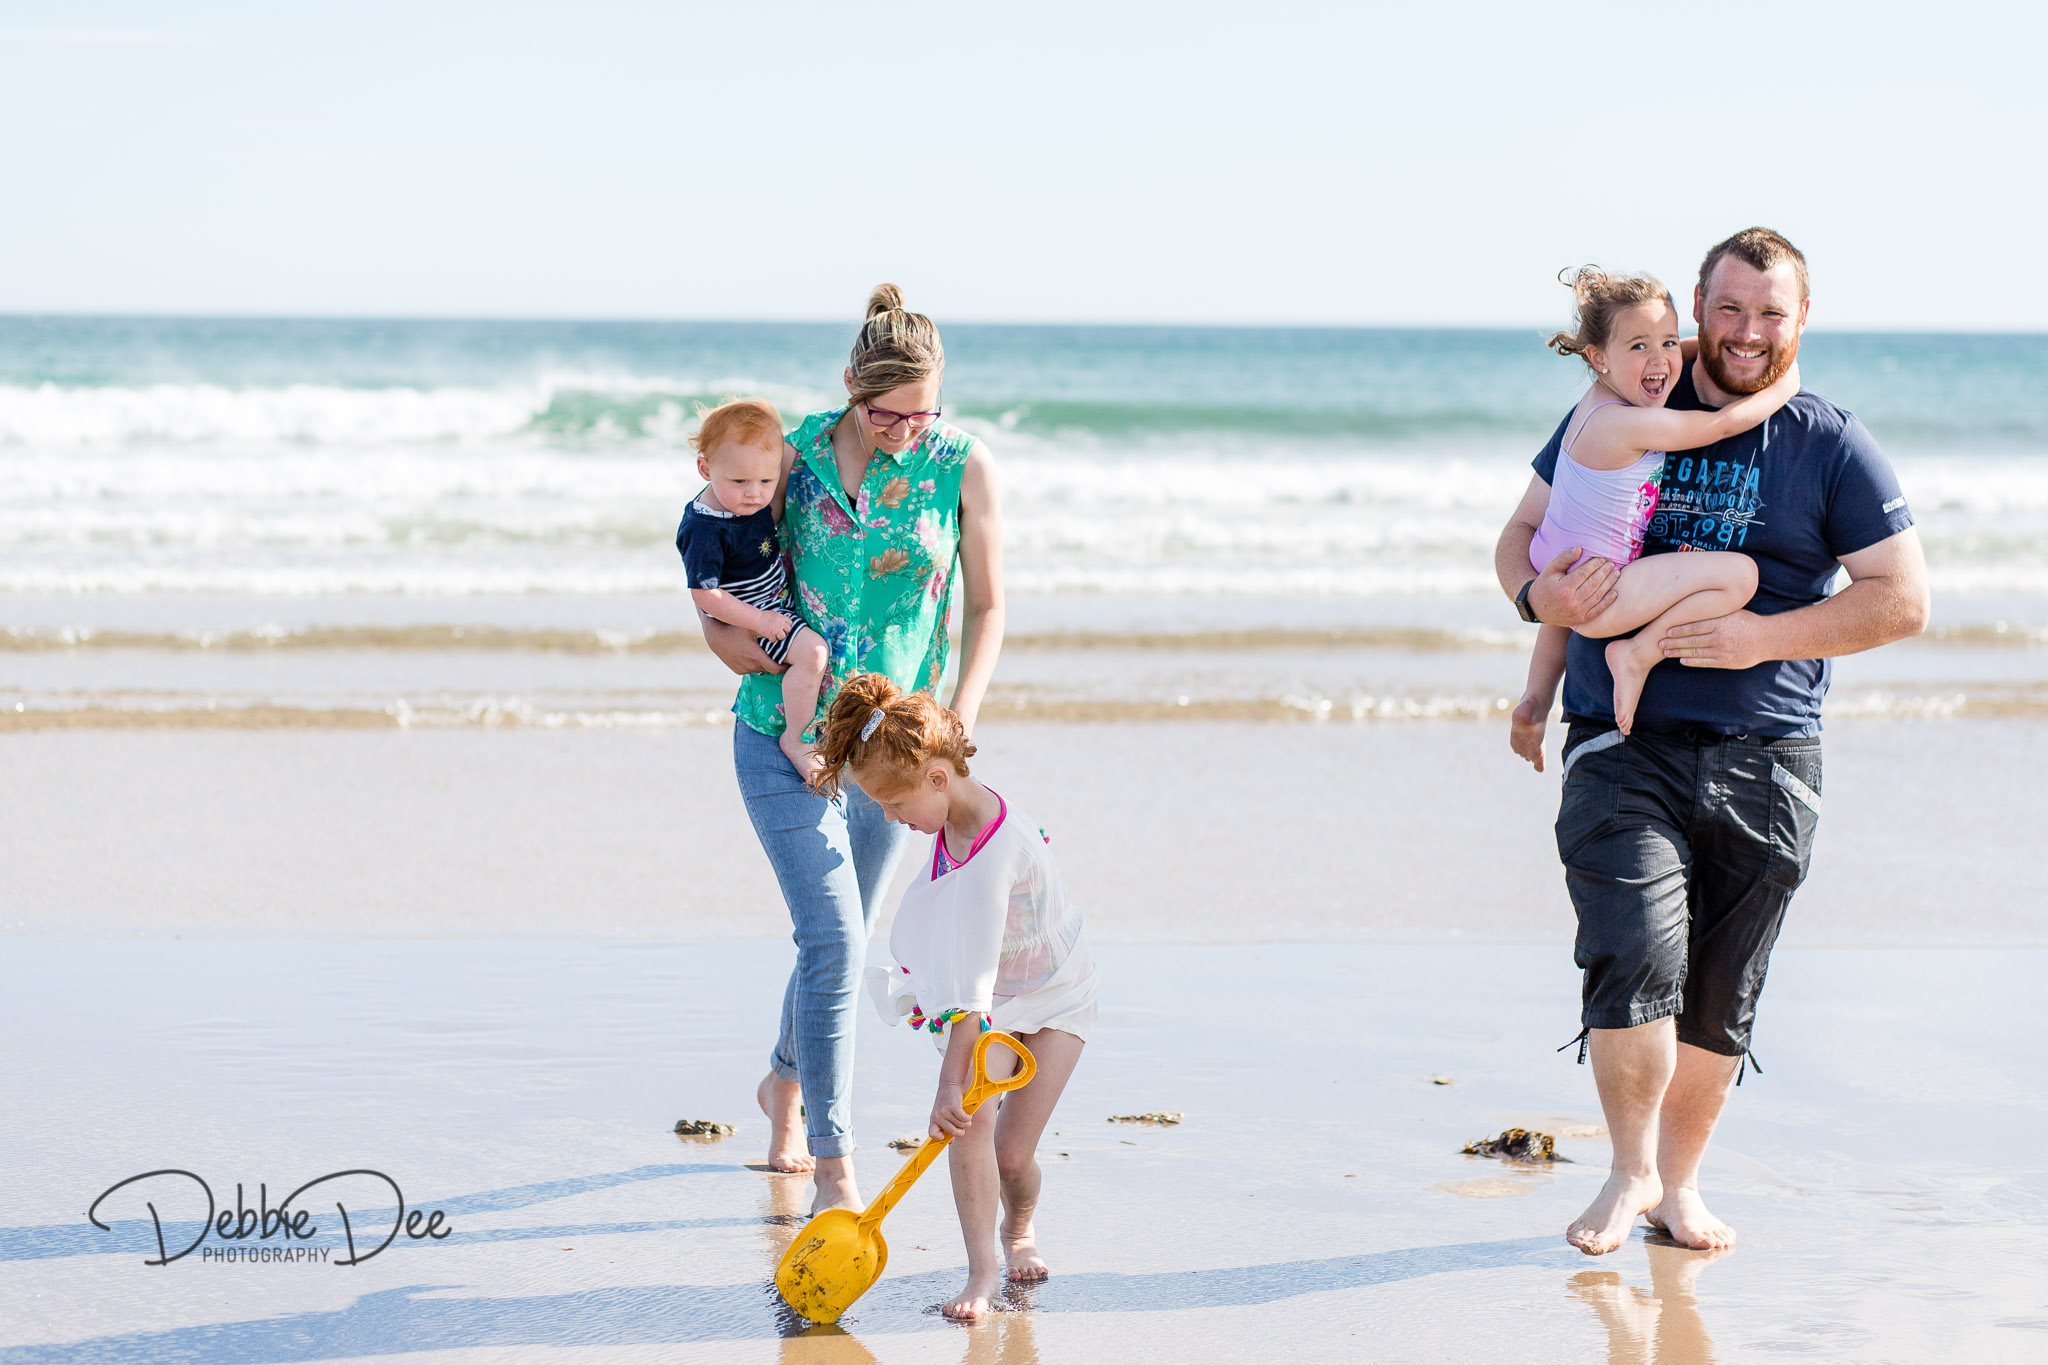 Family photography session banff beach aberdeenshire Debbie Dee Photography family walking along beach